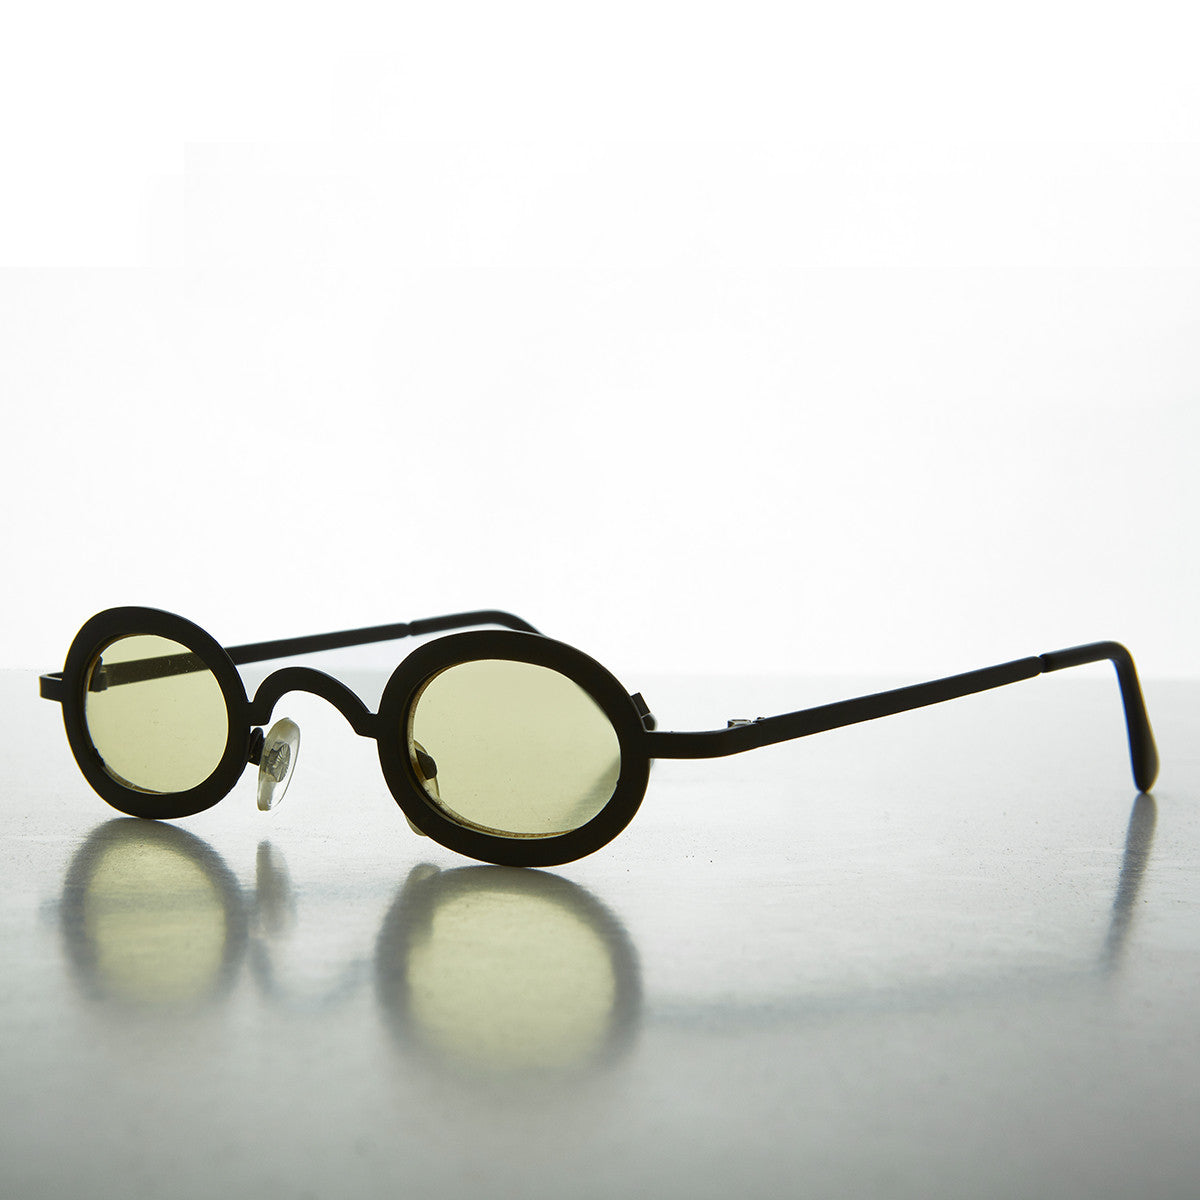 1990s oval colored lens goth vintage sunglasses